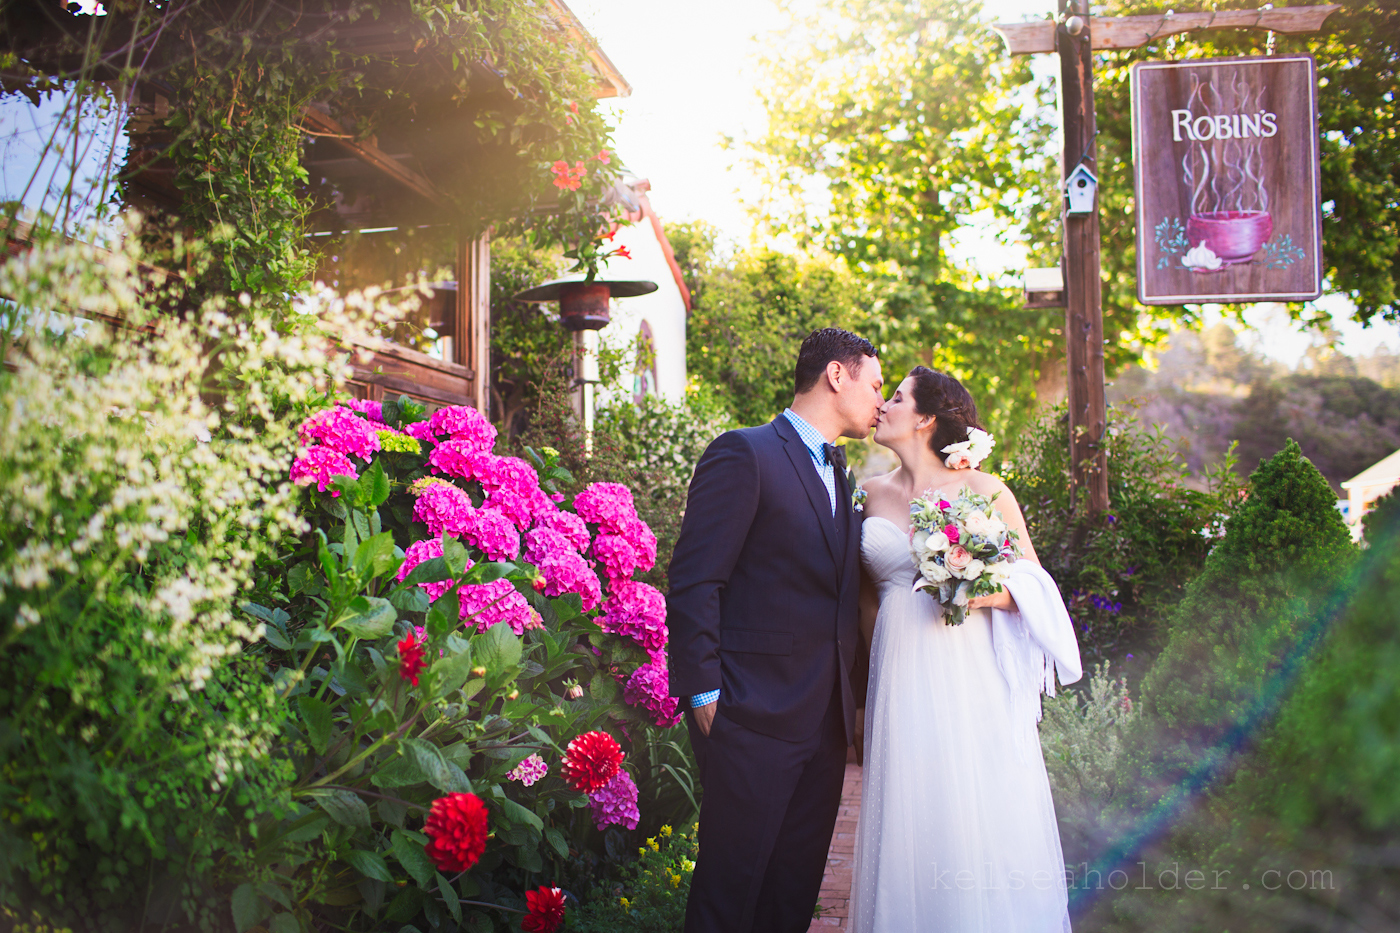 kelsea_holder_eco_outdoor_california_wedding051